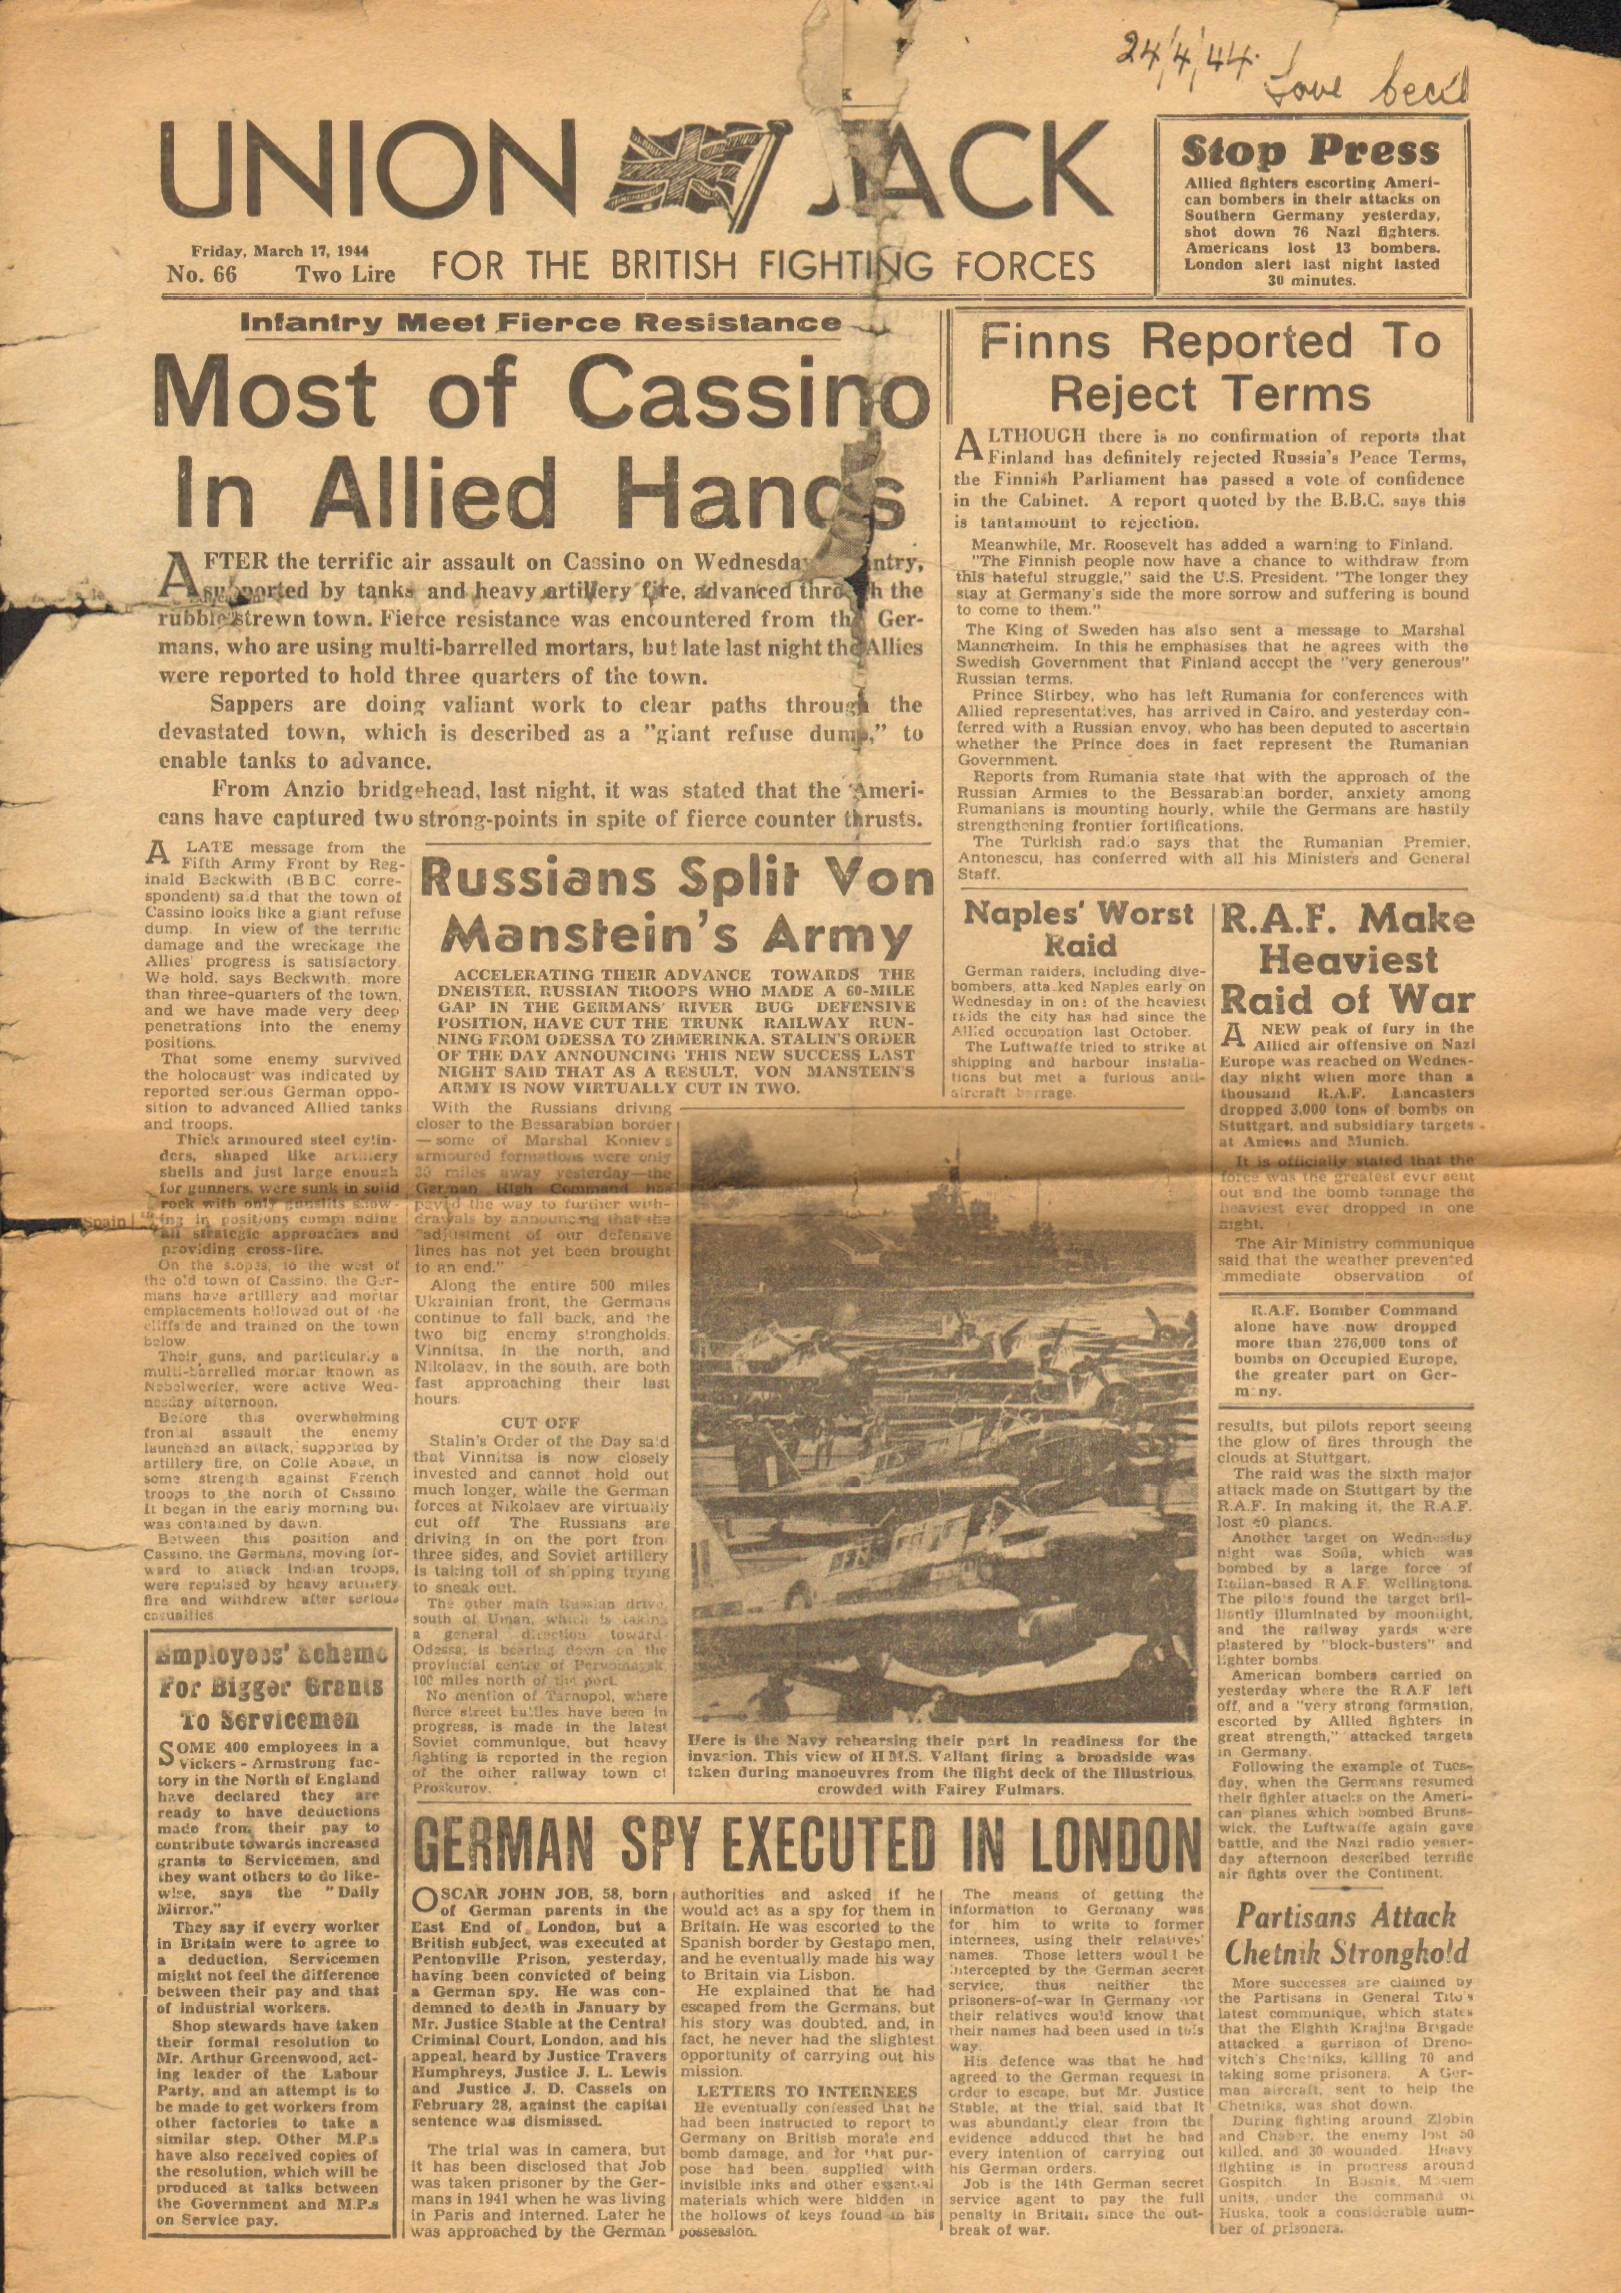 View individual pages of 'Union Jack, March 17th 1944'